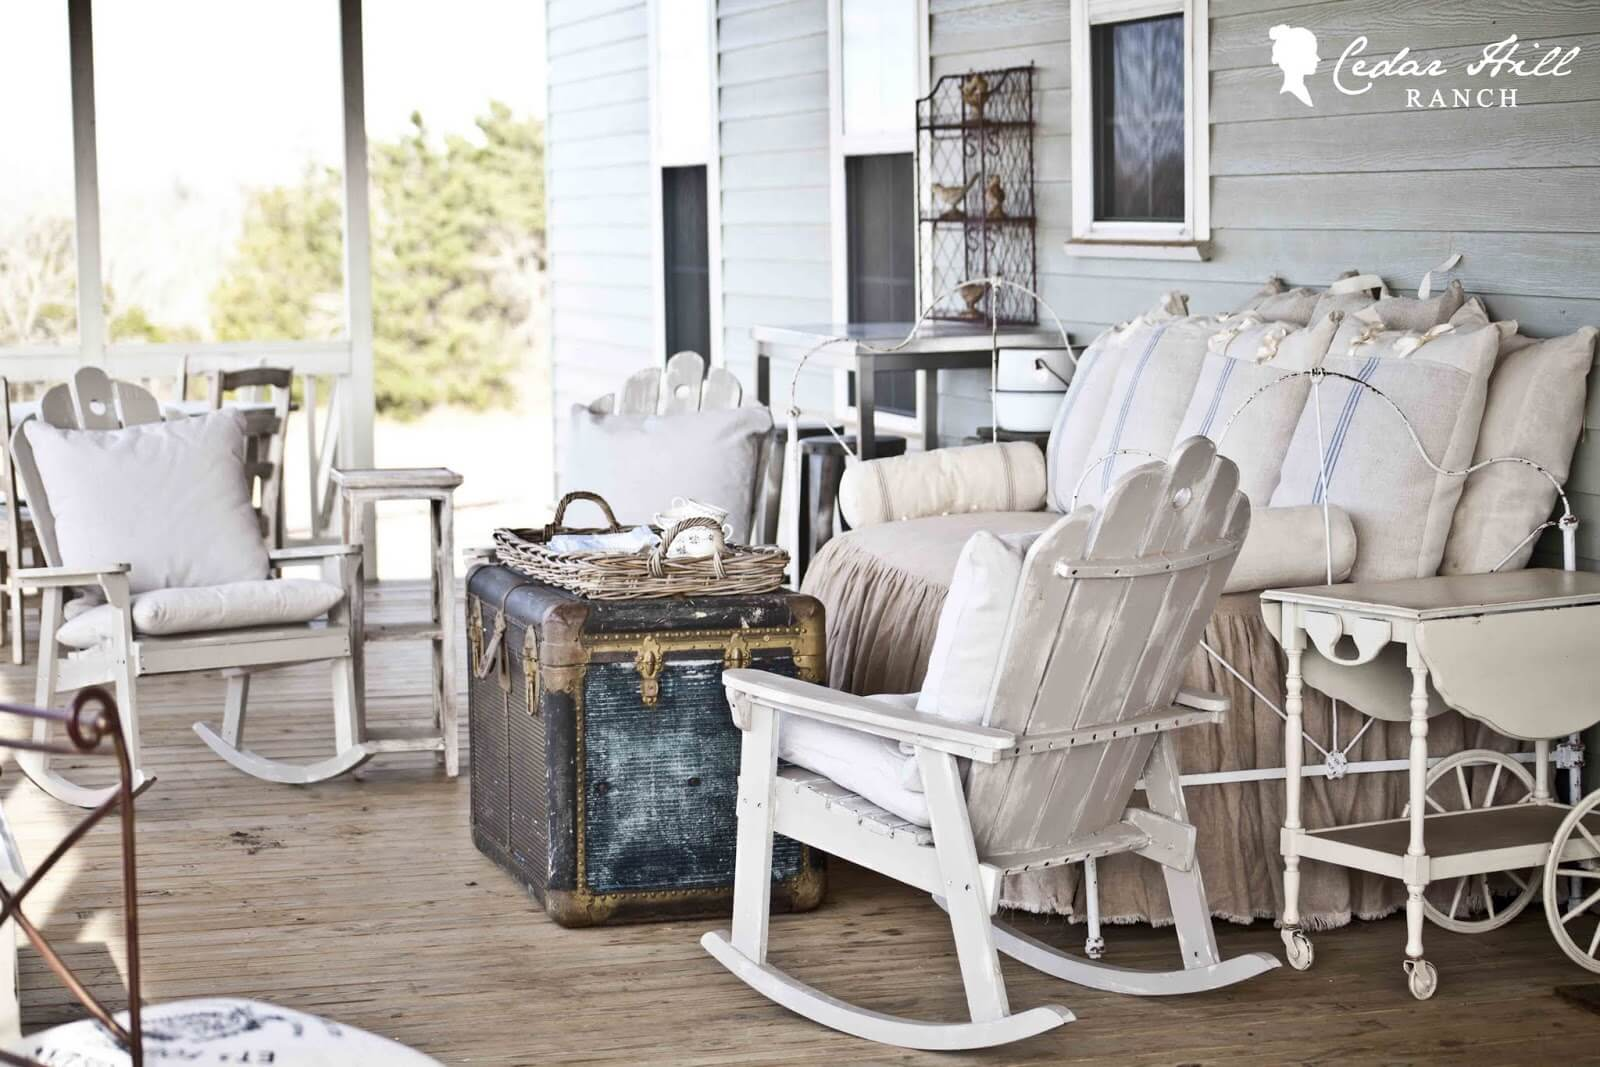 Lived In and Lived On Outdoor Furniture